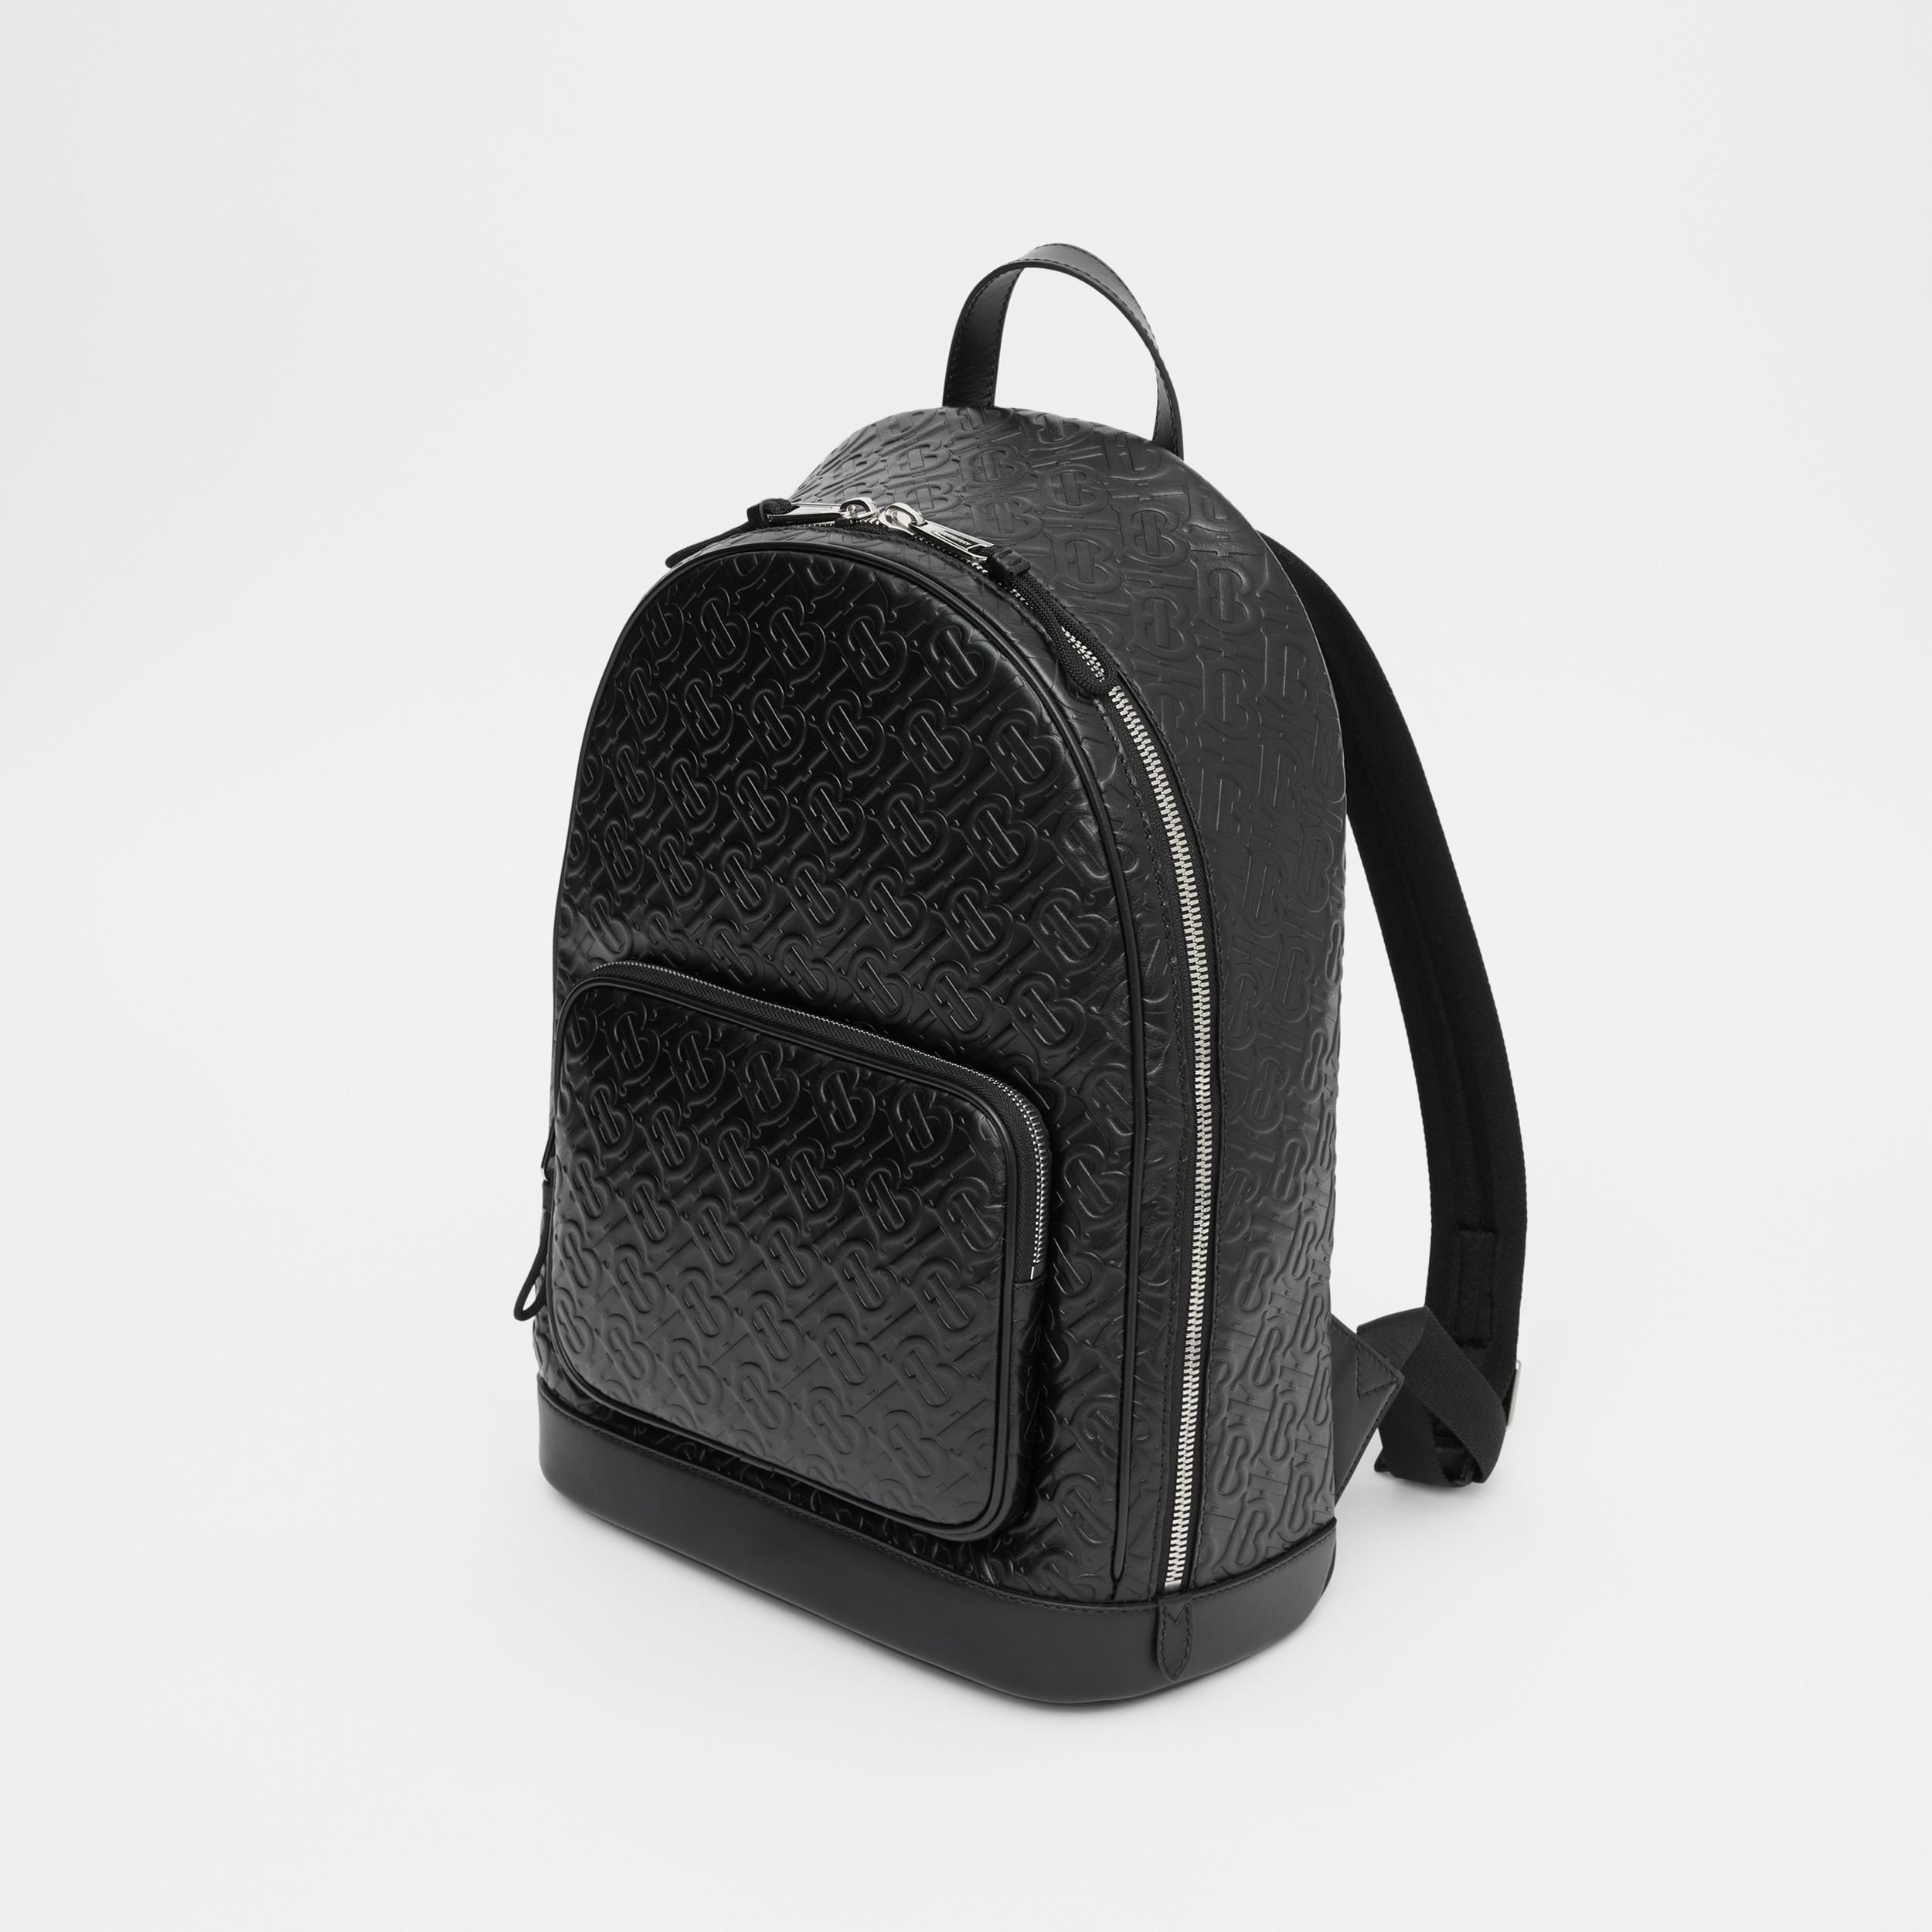 Monogram Leather Backpack in Black - Men | Burberry - 4